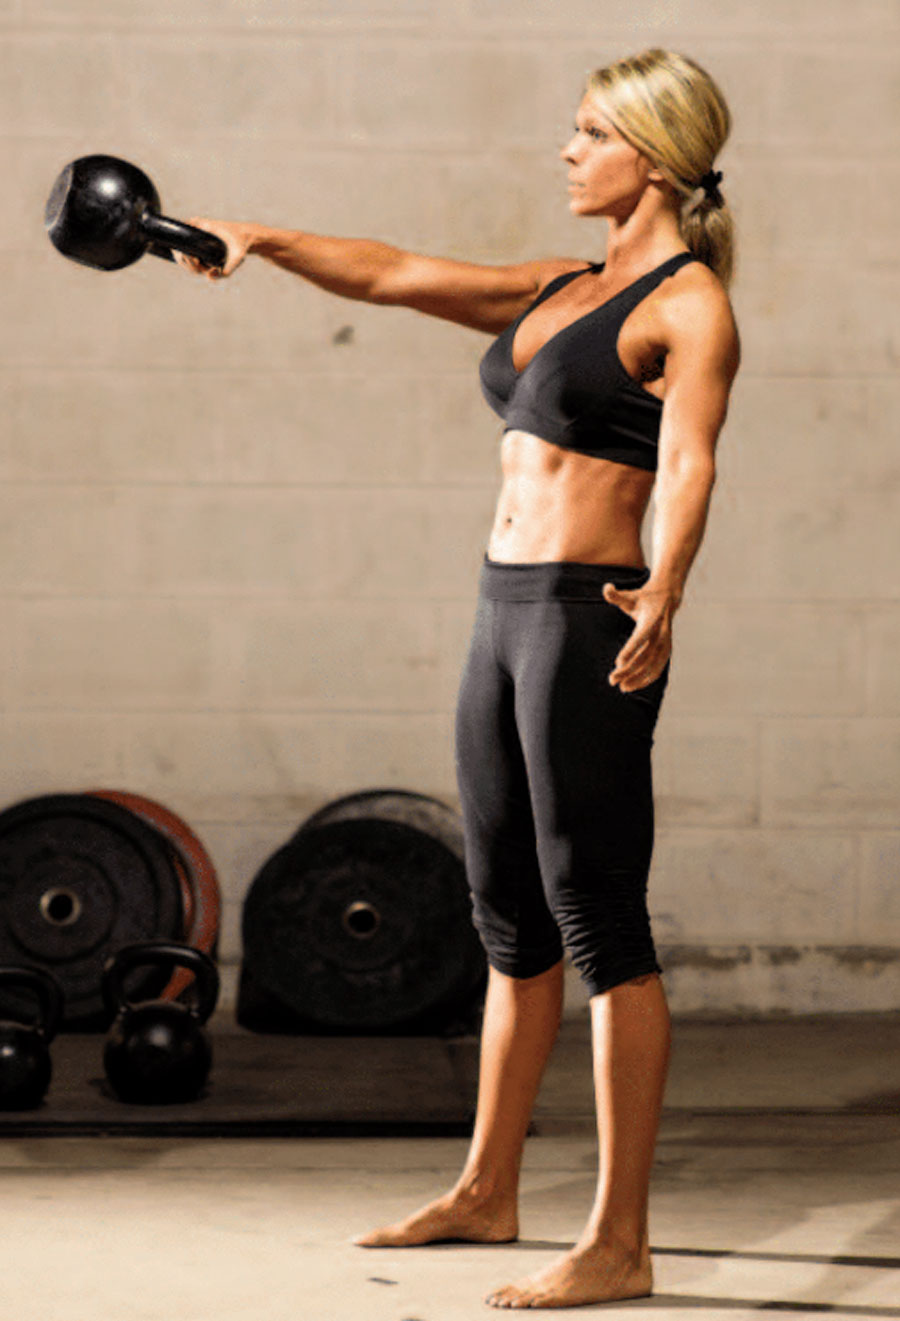 RKC KettlebellSwings BethAndrews900px